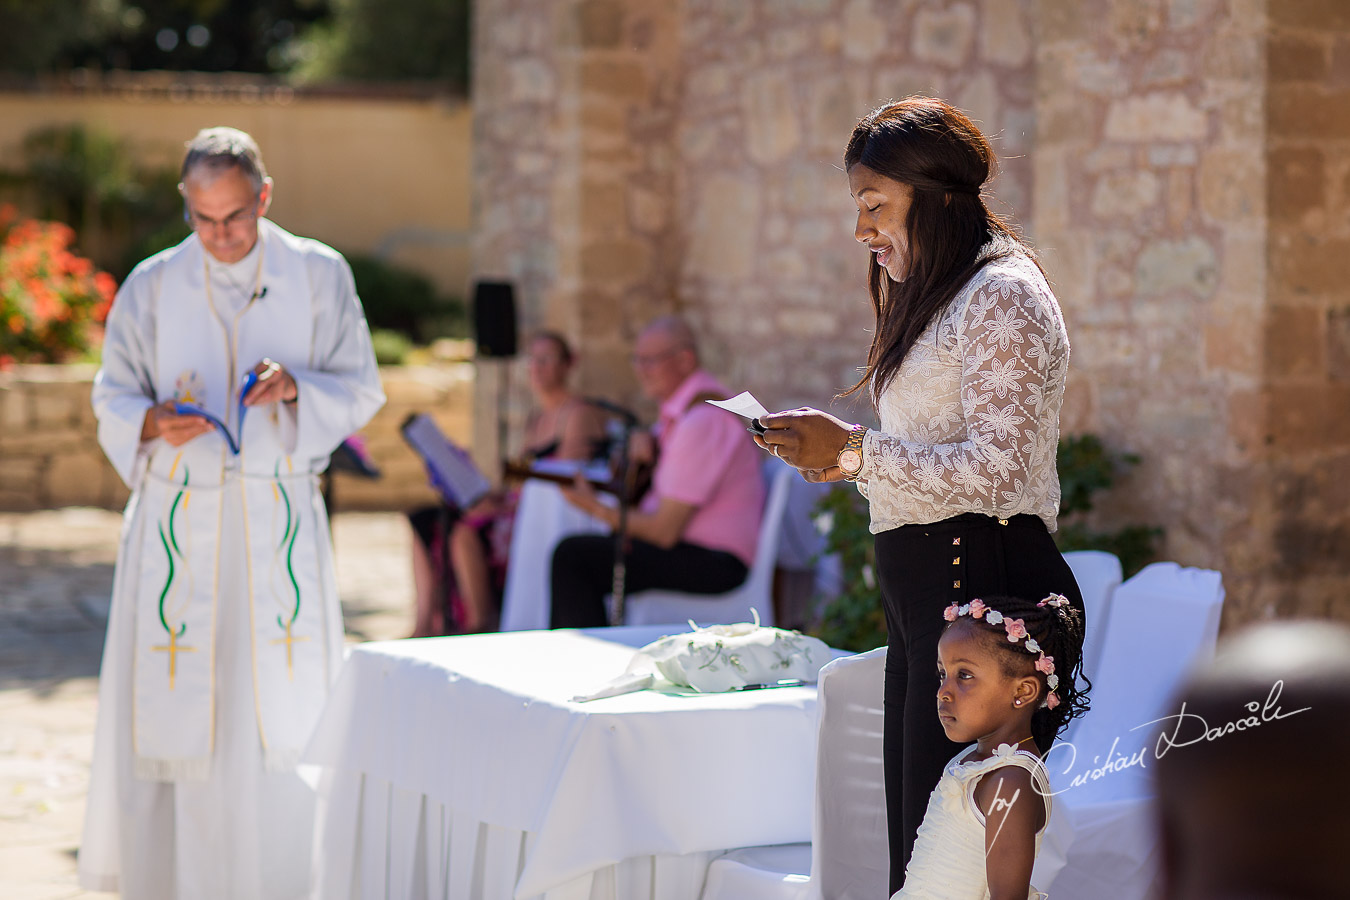 Moments when a guest is reading a poem, captured at Beautiful ceremony moments captured at a wedding at Minthis Hills in Cyprus, by Cristian Dascalu.